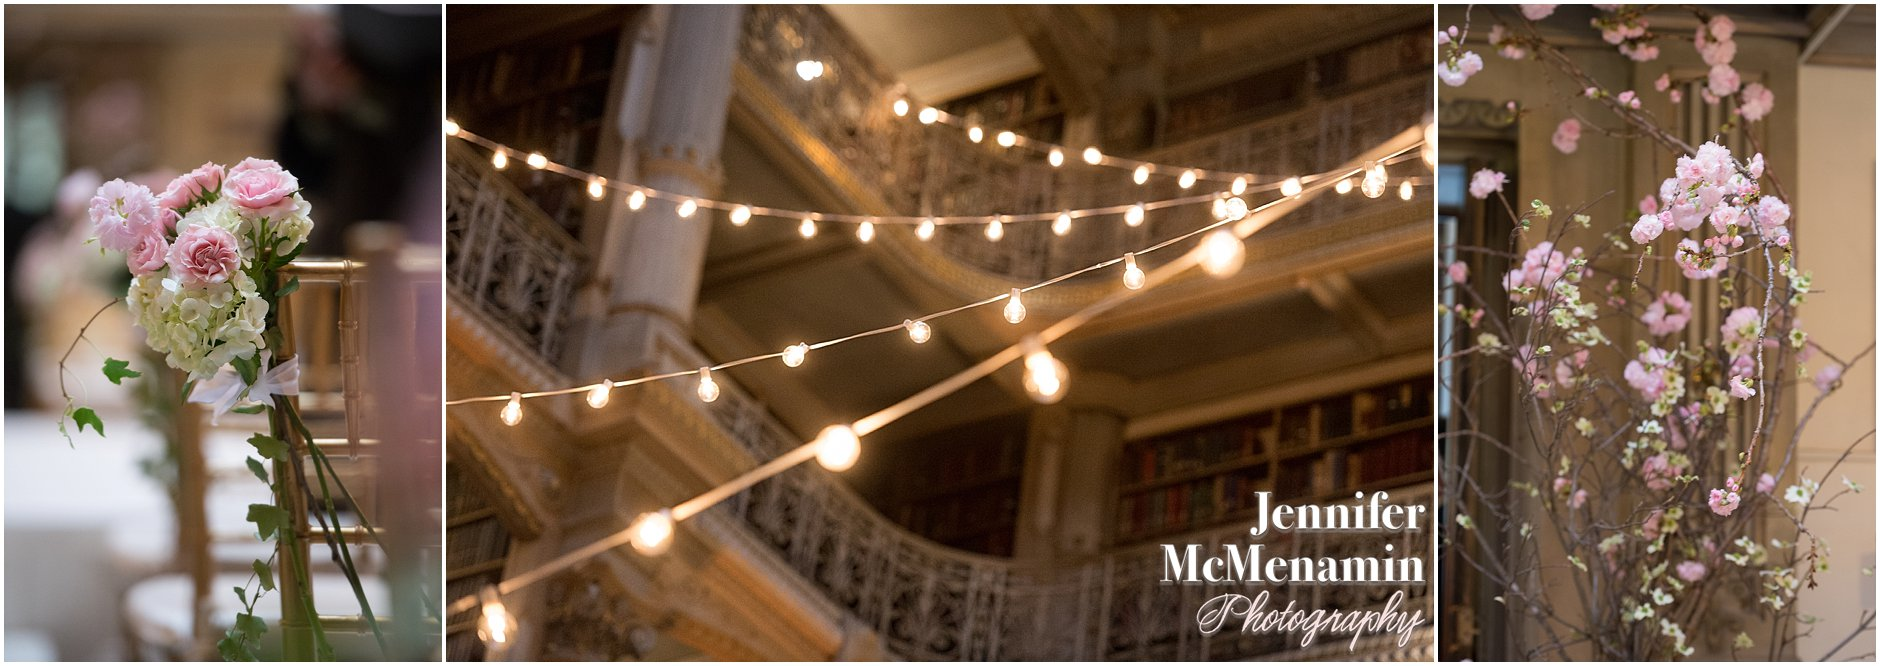 024-Peabody-Library-Wedding_WilsonPatterson_01201-0239_Jennifer-McMenamin-Photography